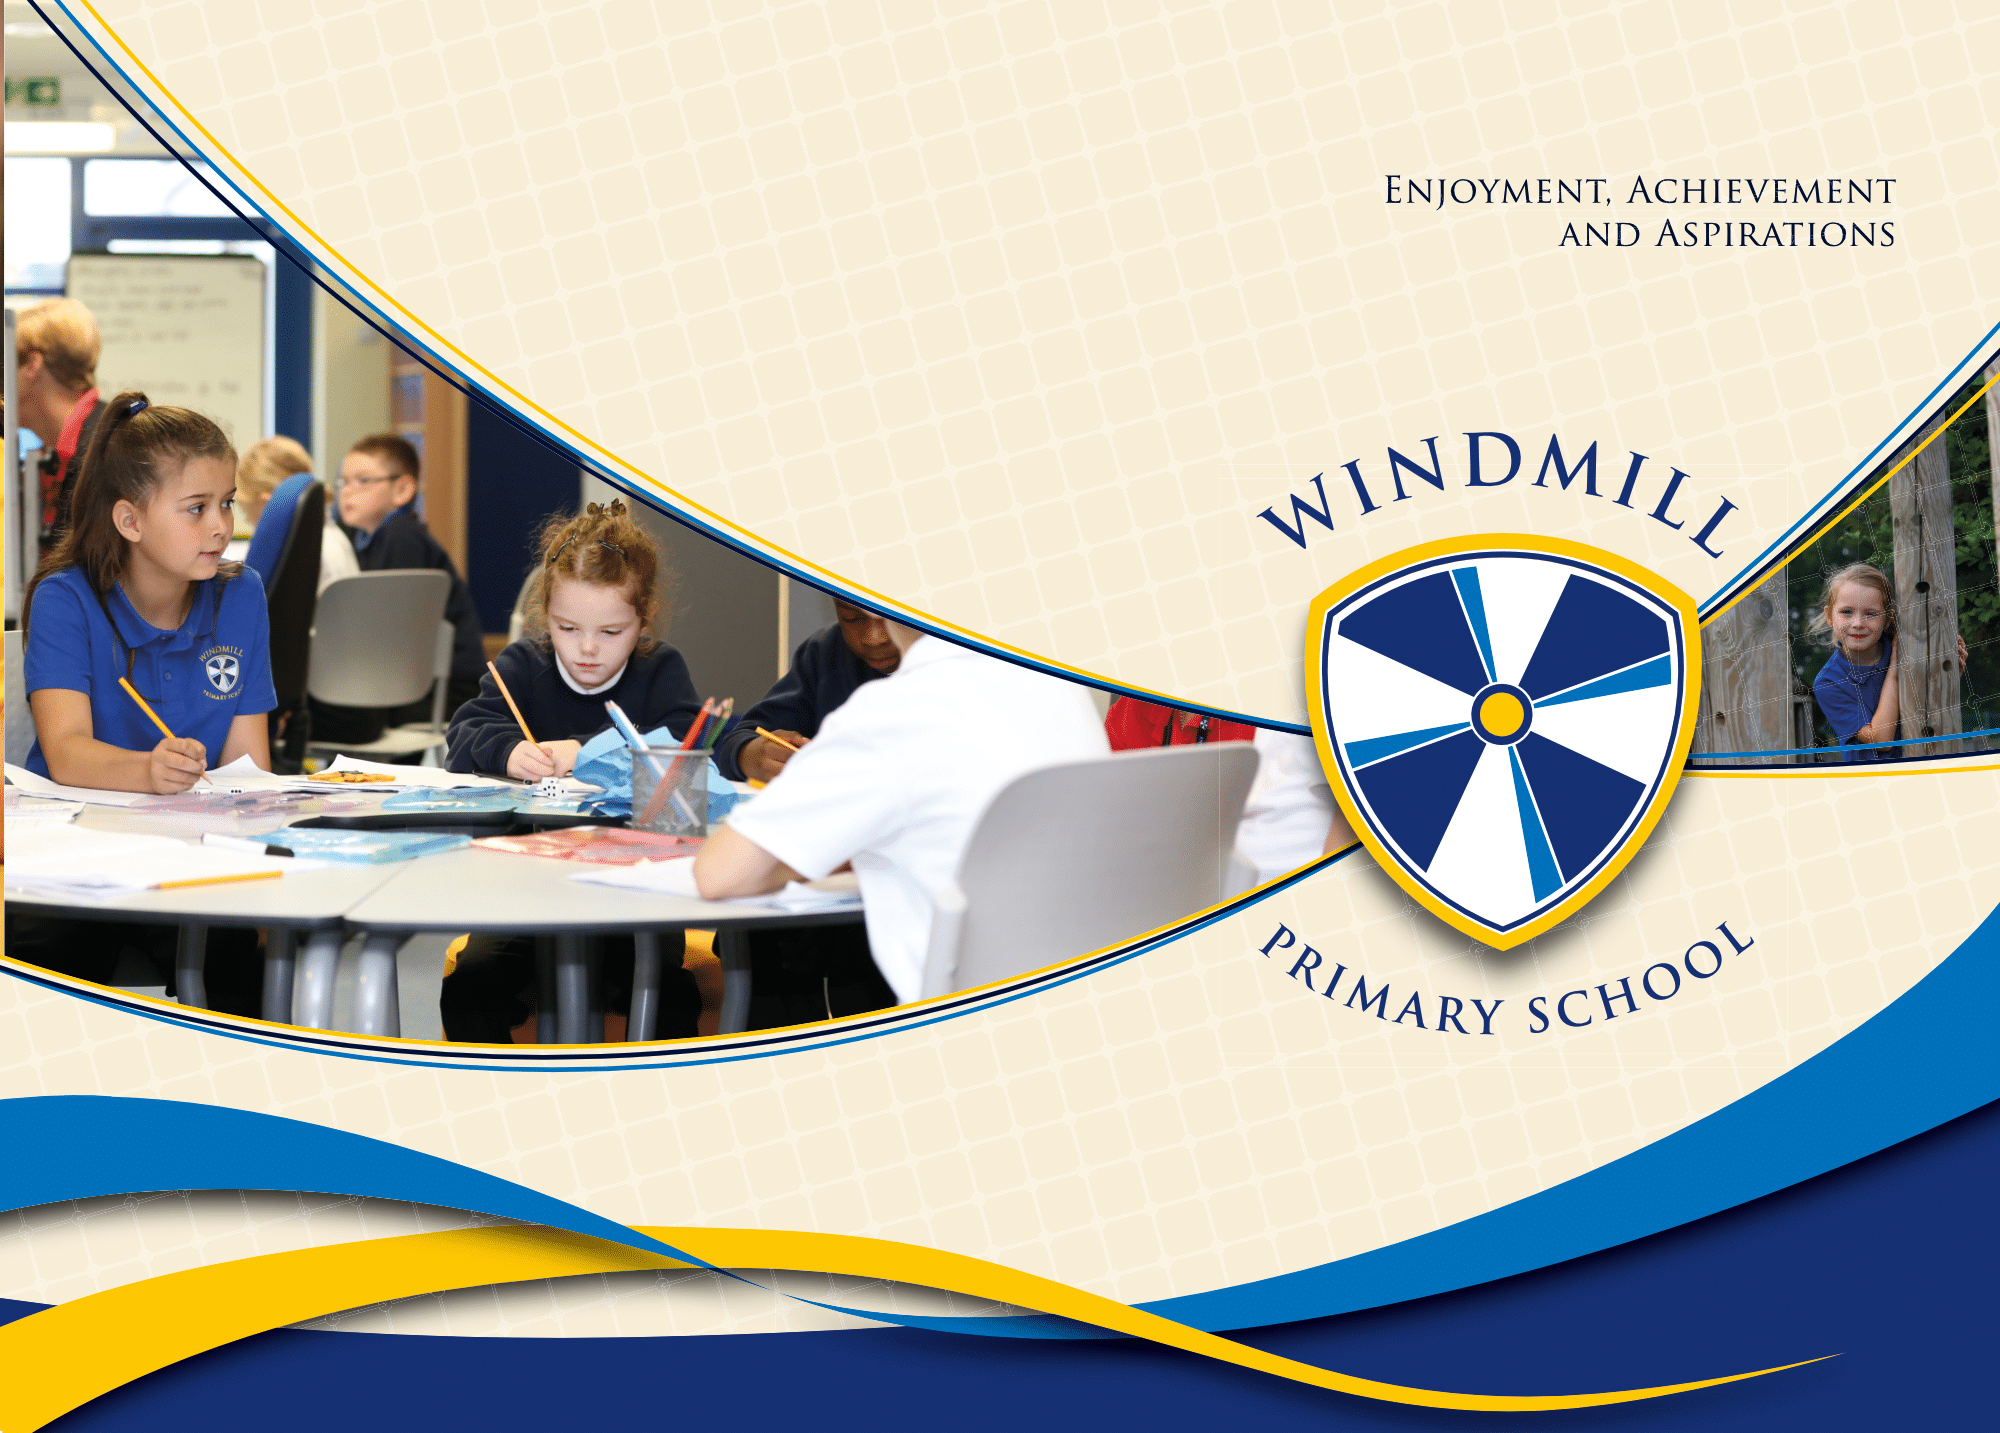 Windmill Primary School – Prospectus Cover